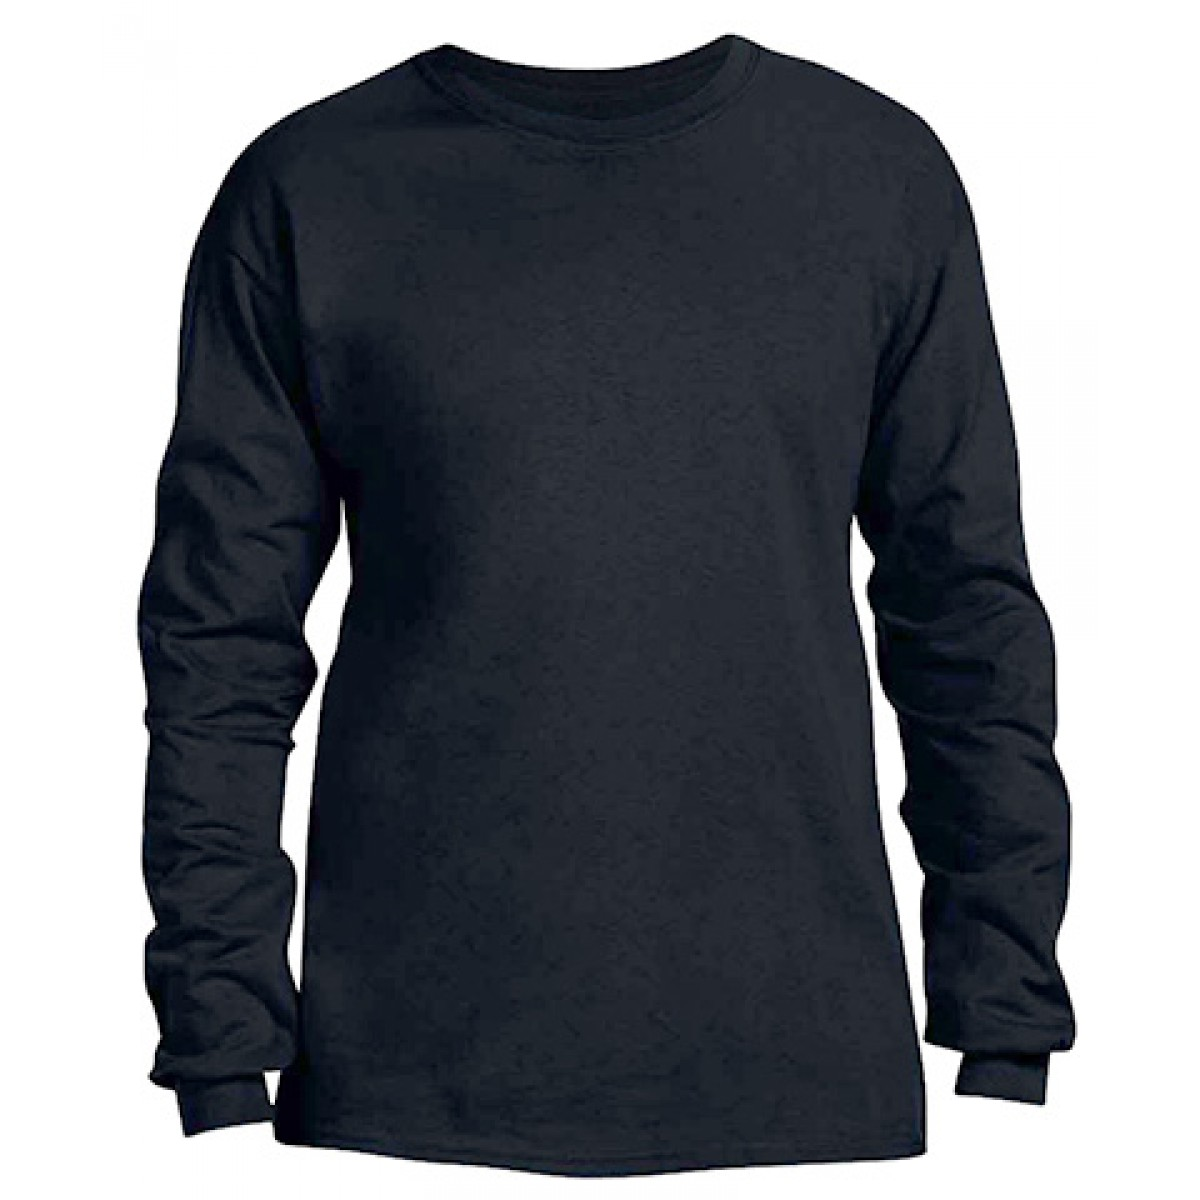 Heavy Cotton Long-Sleeve Adidas Shirt-Black-S